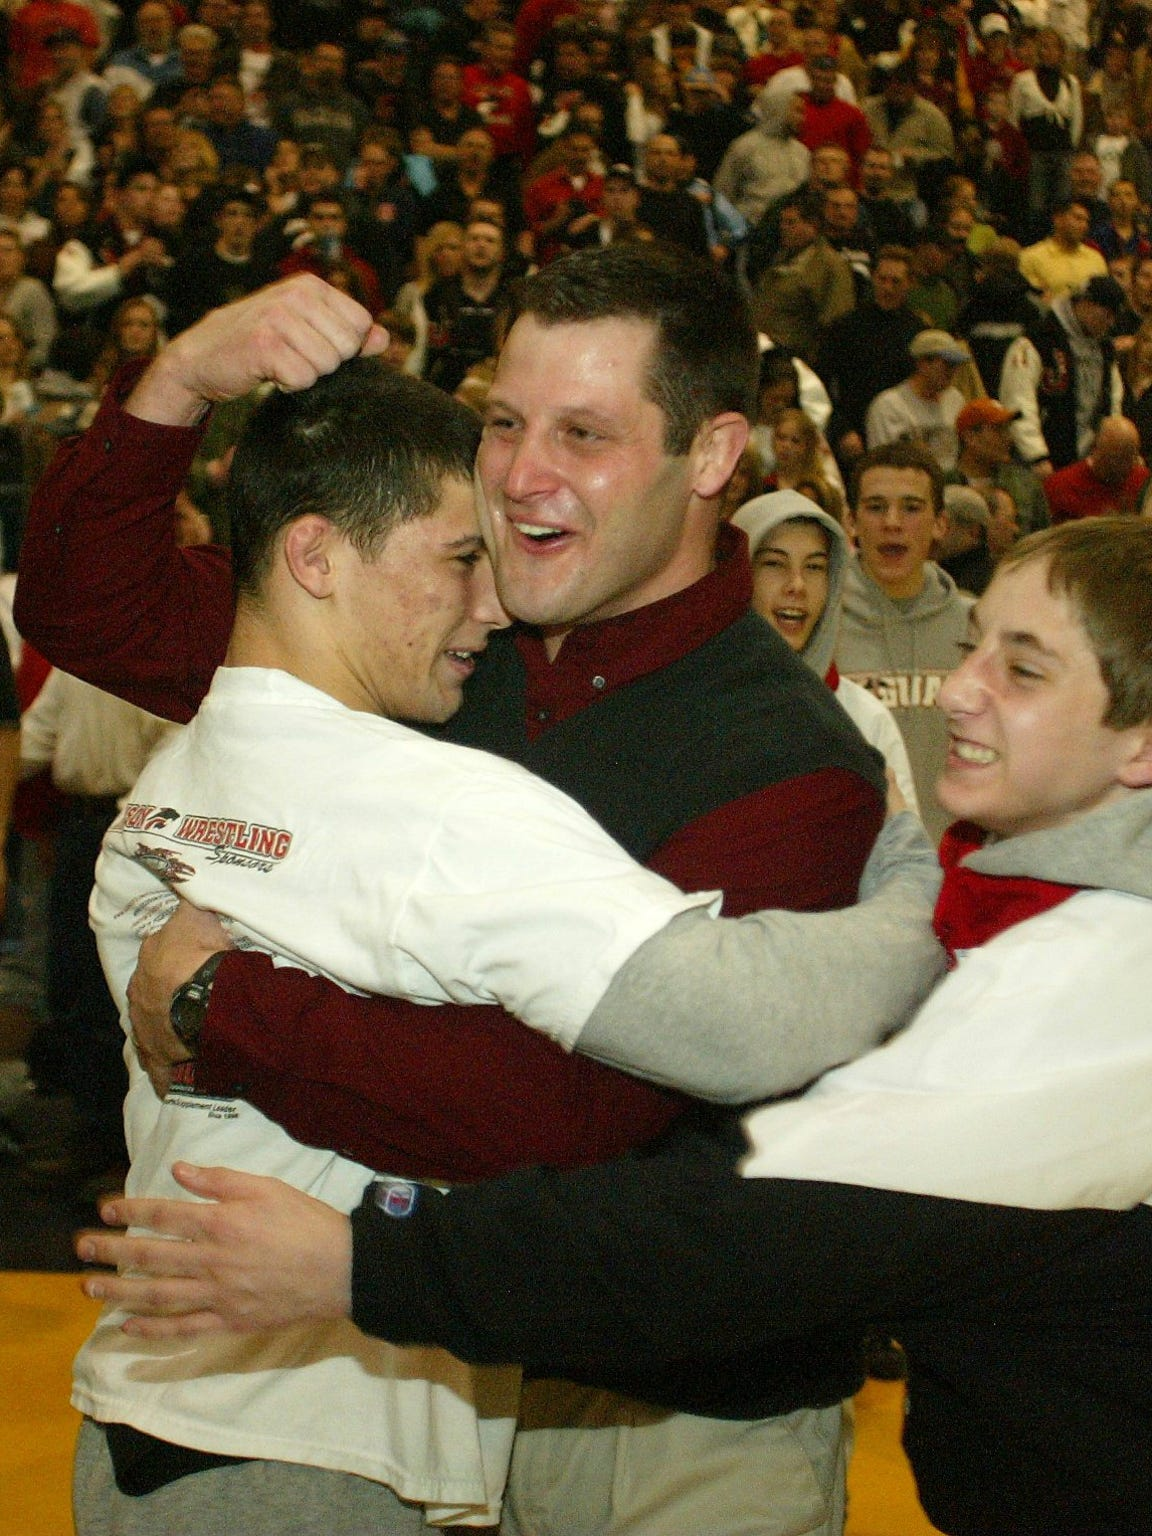 Scott Goodale and Scott Winston had many moments to celebrate together at Jackson Memorial High School before they teamed up as coach and wrestler at Rutgers.